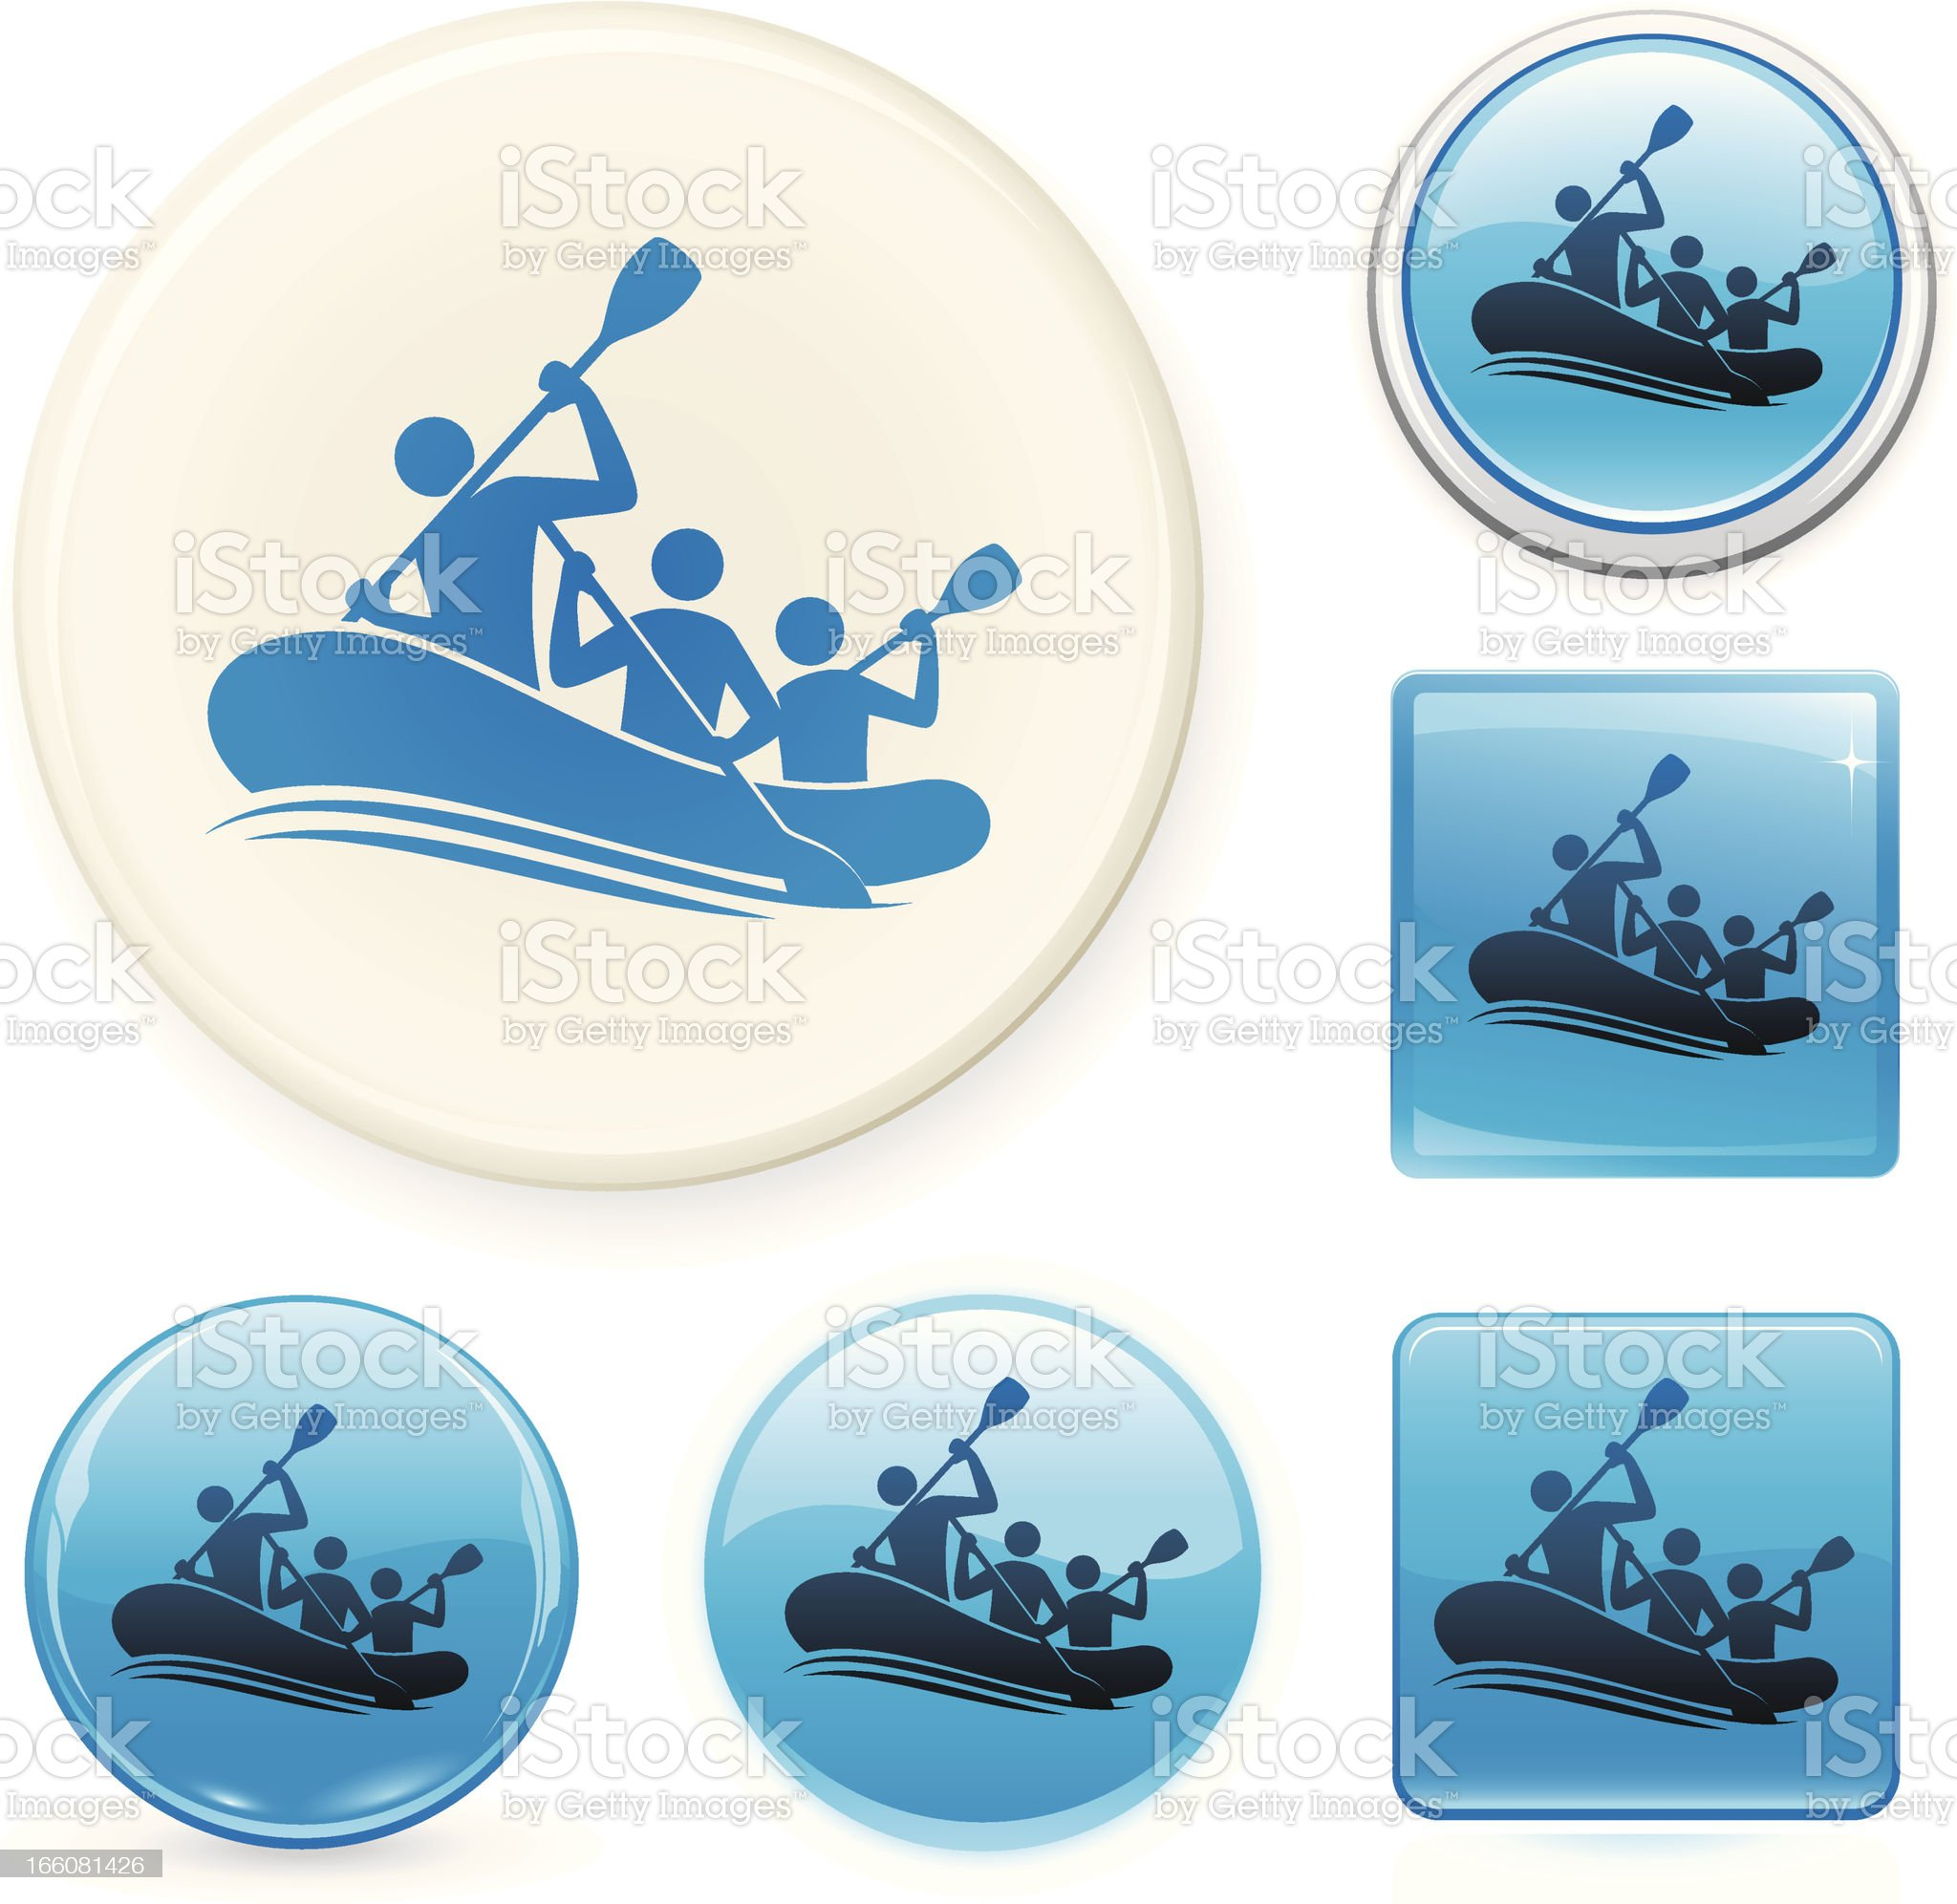 Rafting icon set royalty-free stock vector art